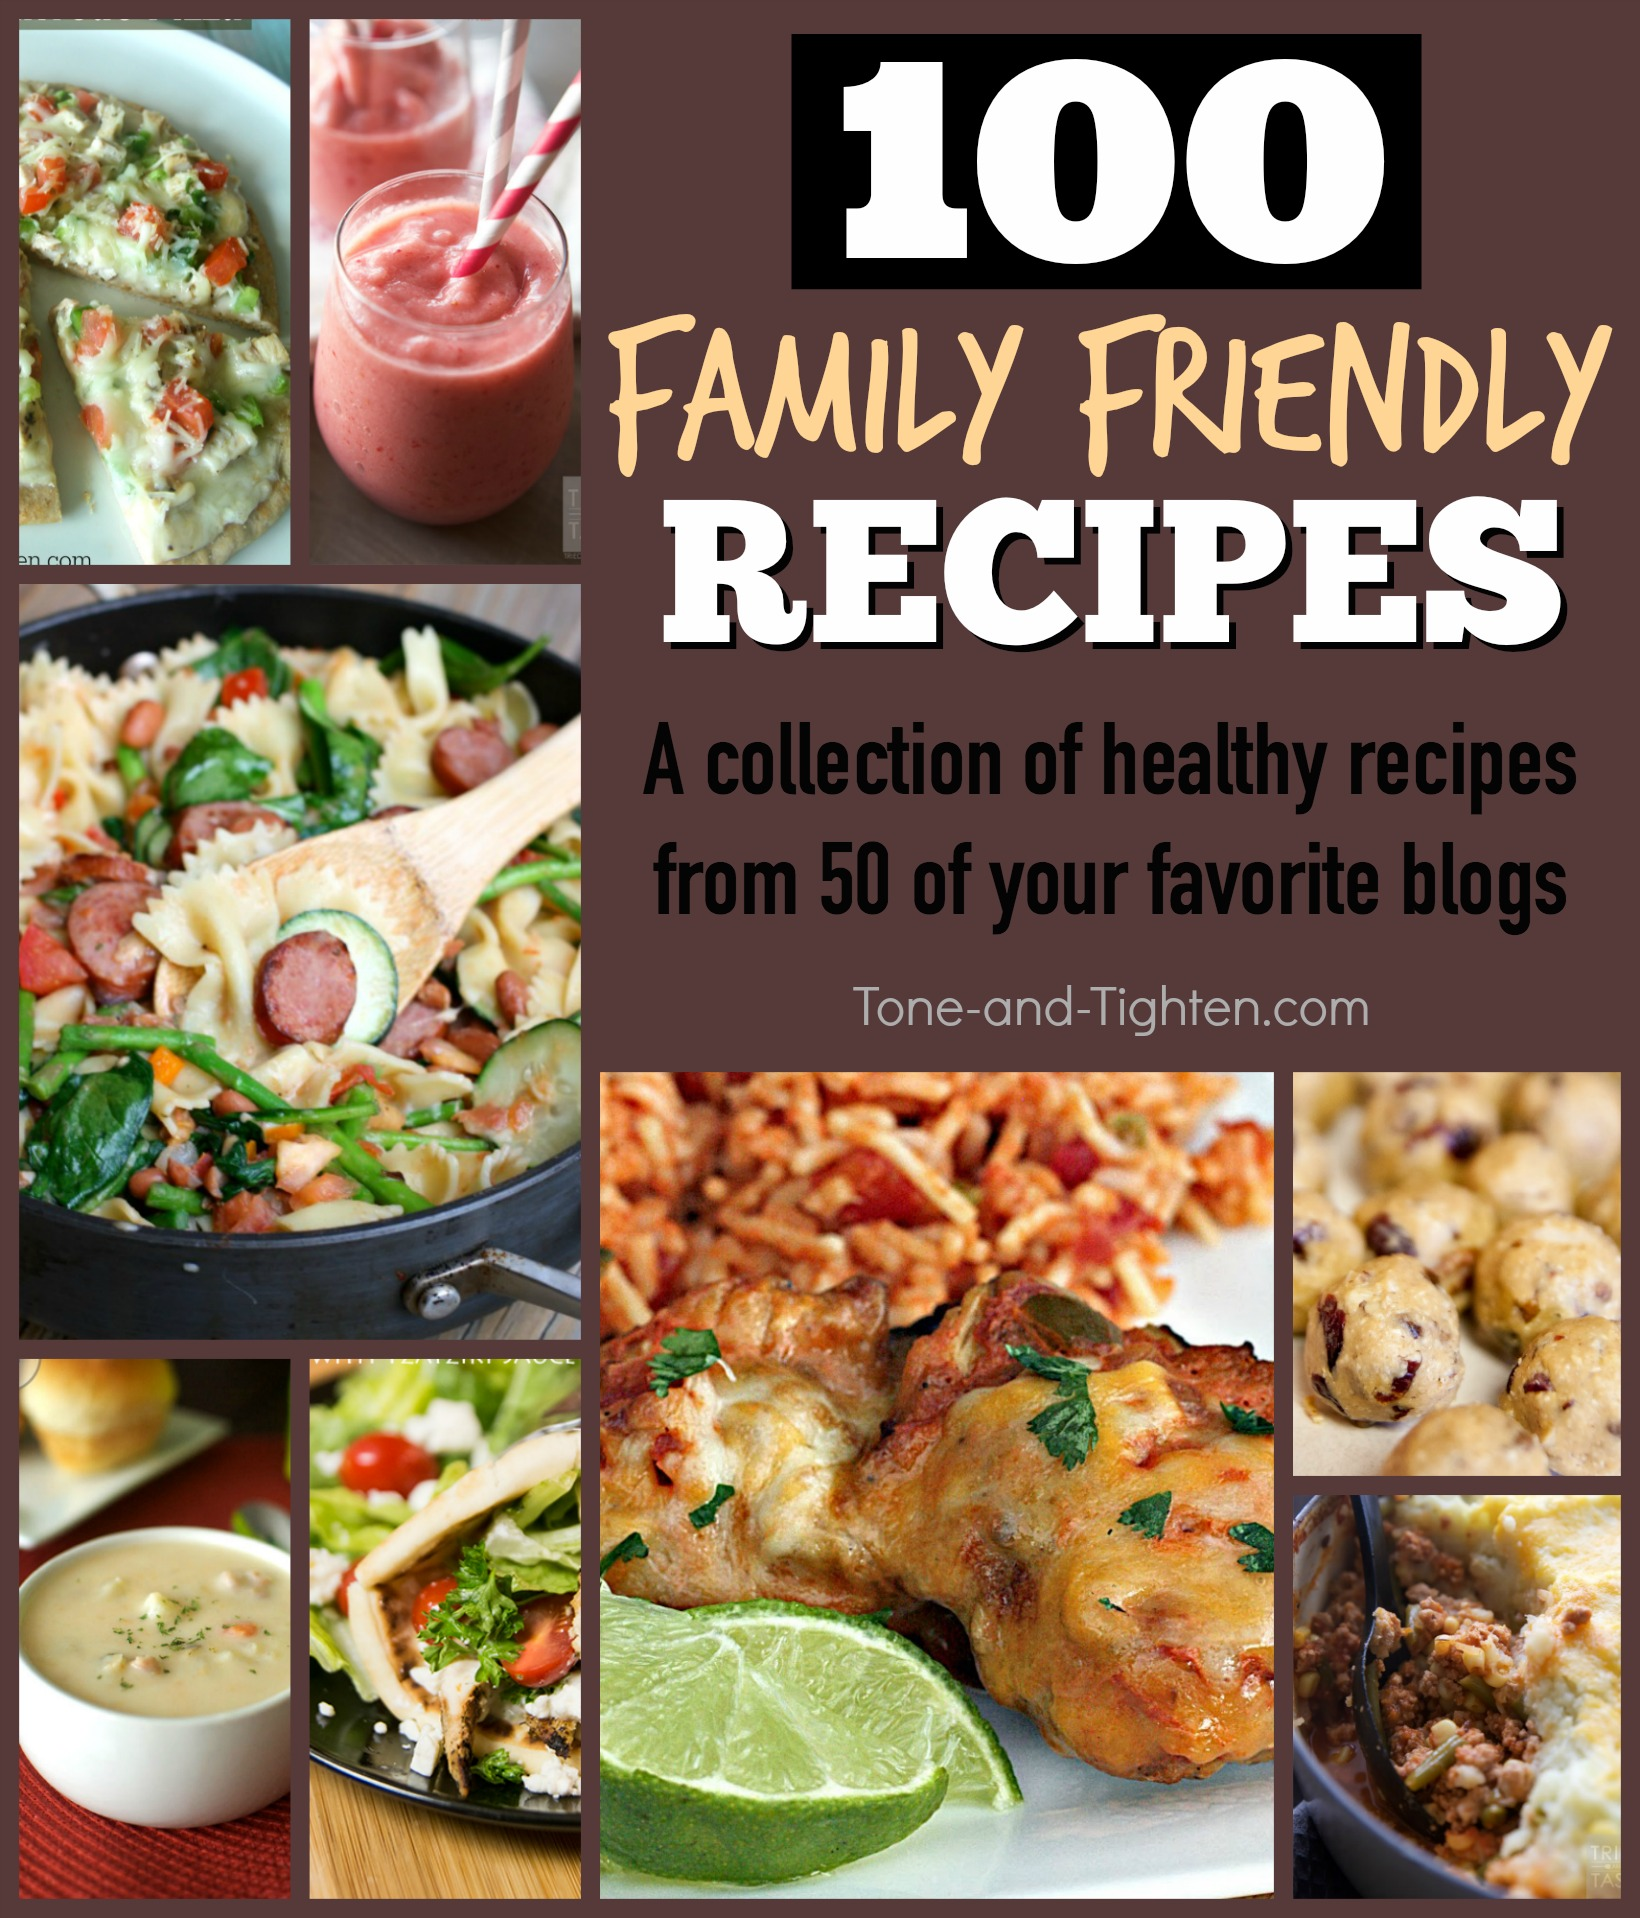 100 best healthy family friendly recipes tone and tighten best healthy family recipes from all the best blogs tone and tighten forumfinder Choice Image